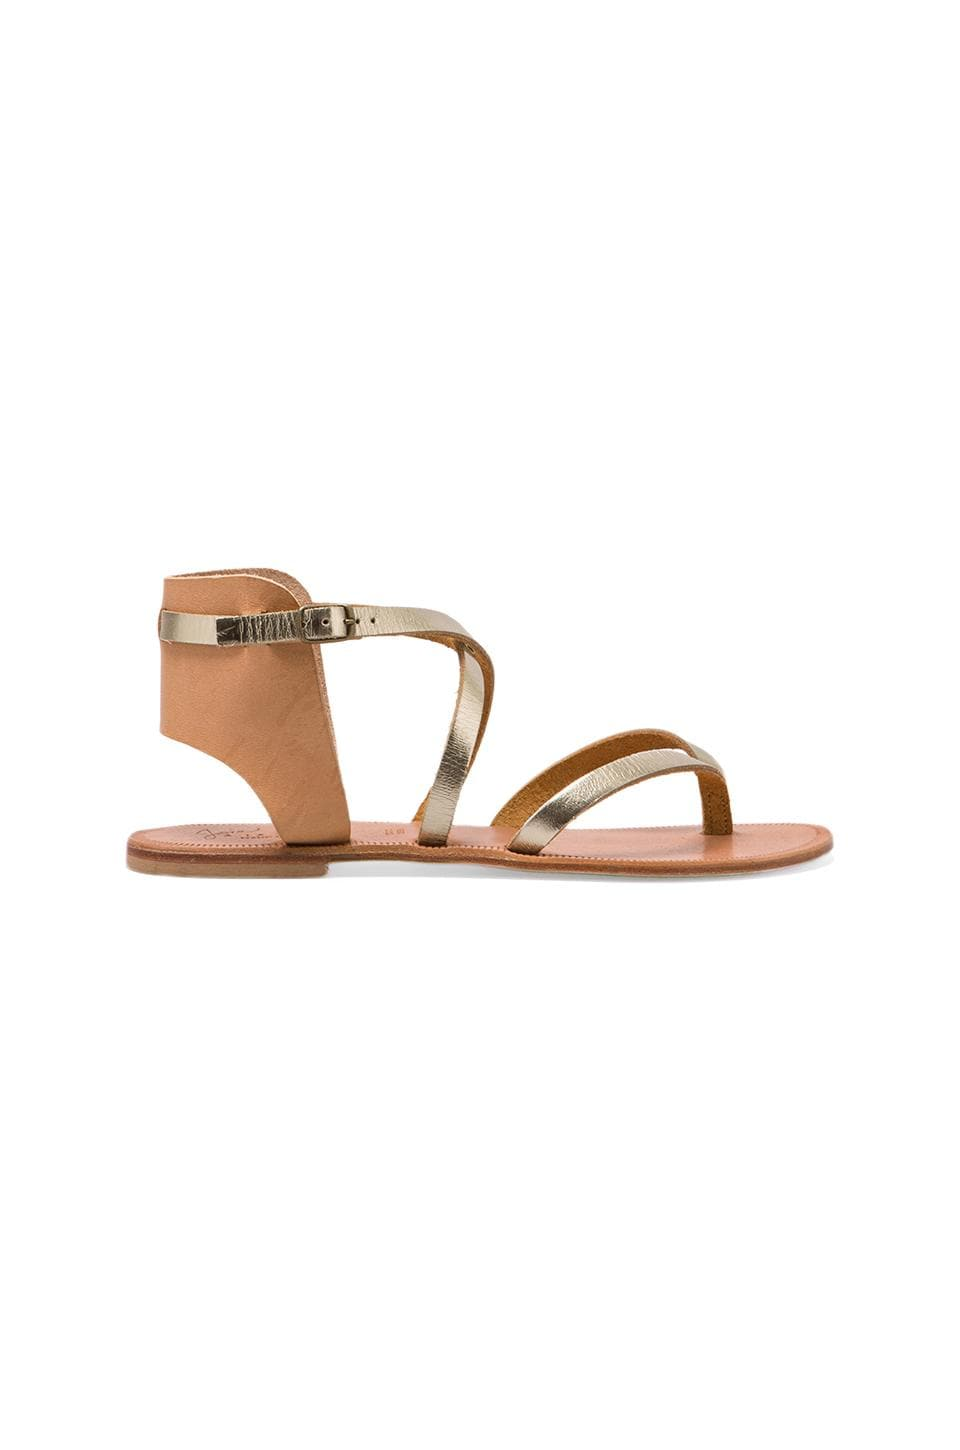 Joie Casis Sandal in Platinum/Natural